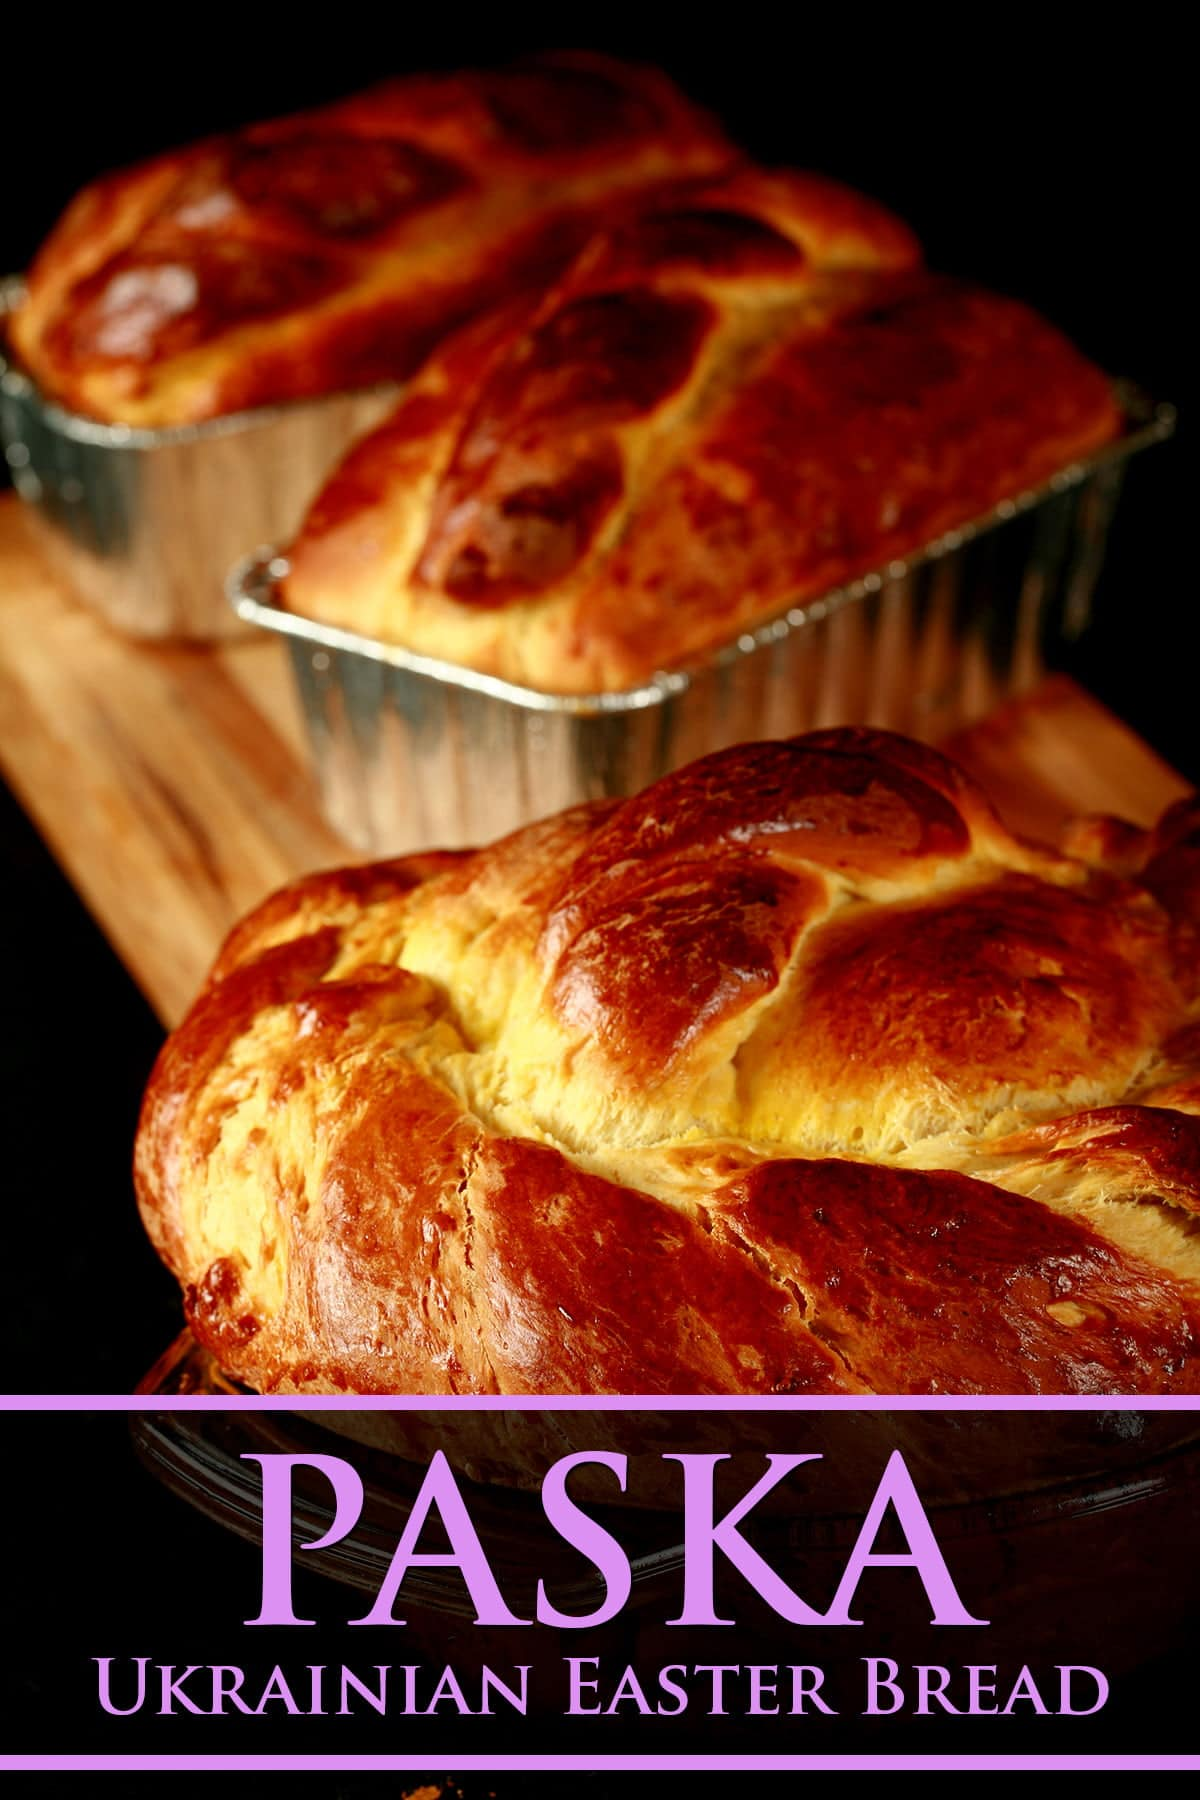 3 loaves of braided and twisted Paska - a Ukrainian Easter bread - on a black background.